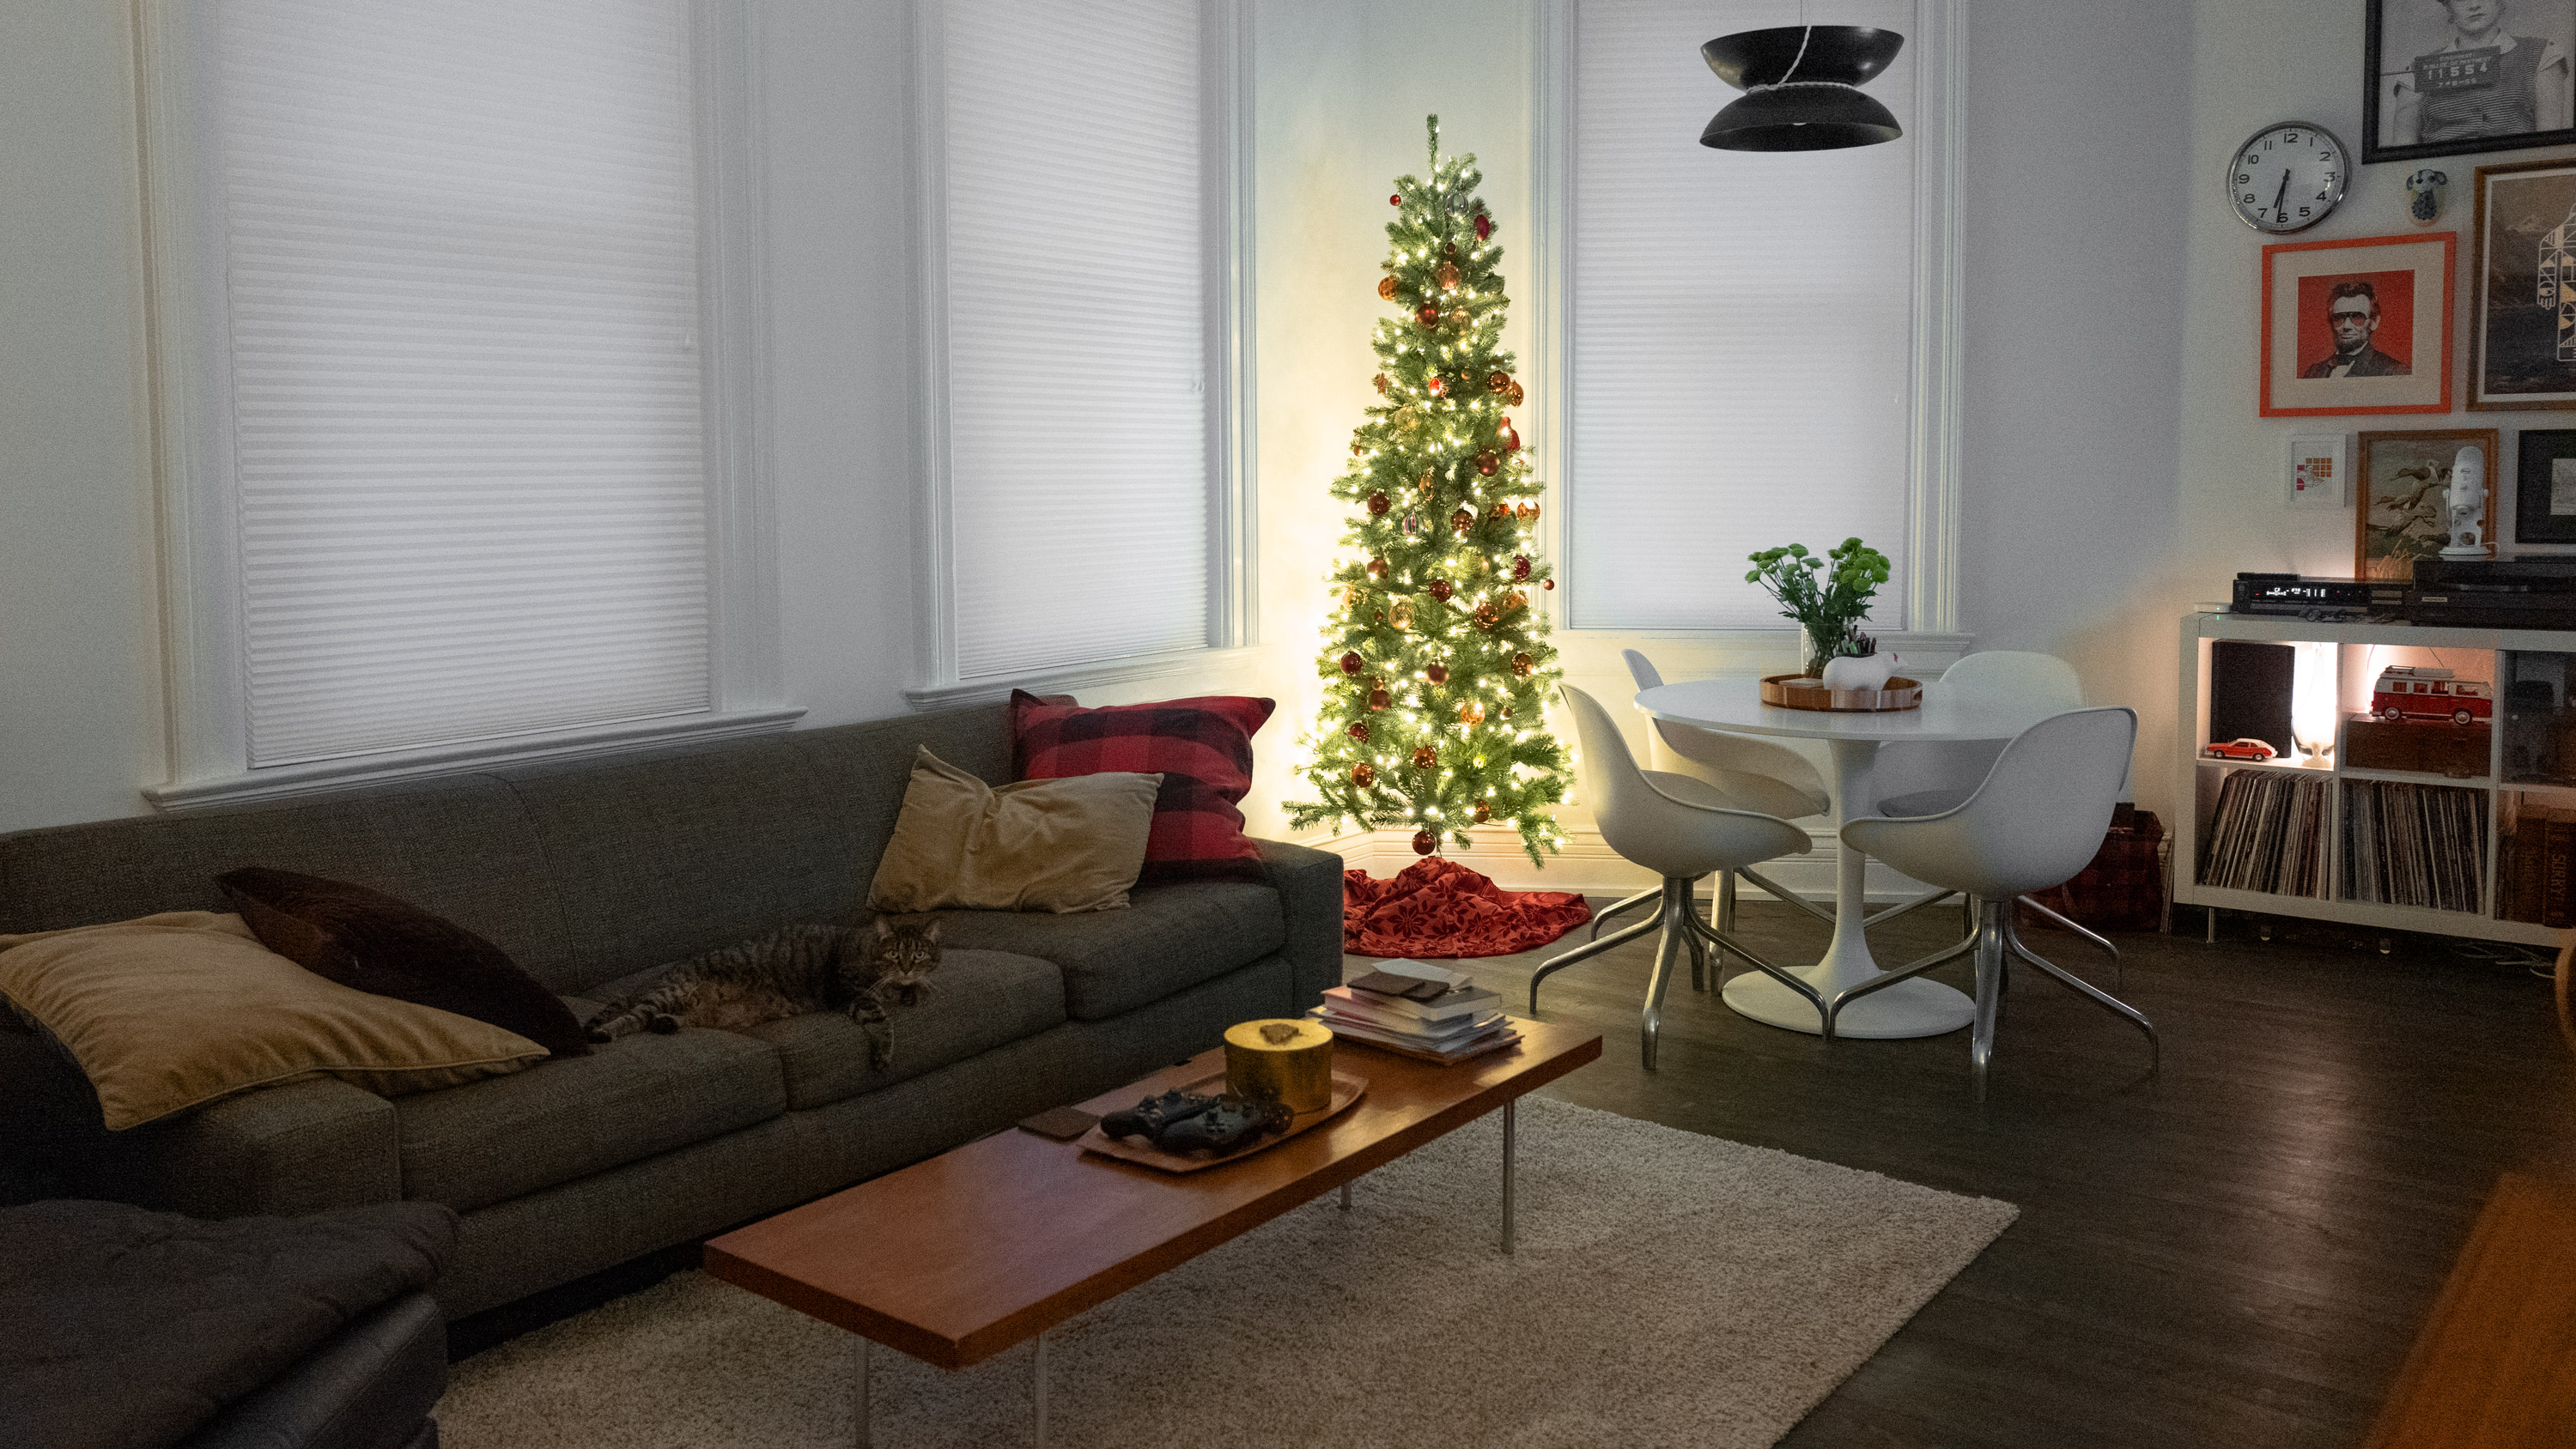 Christmas tree with cat on couch